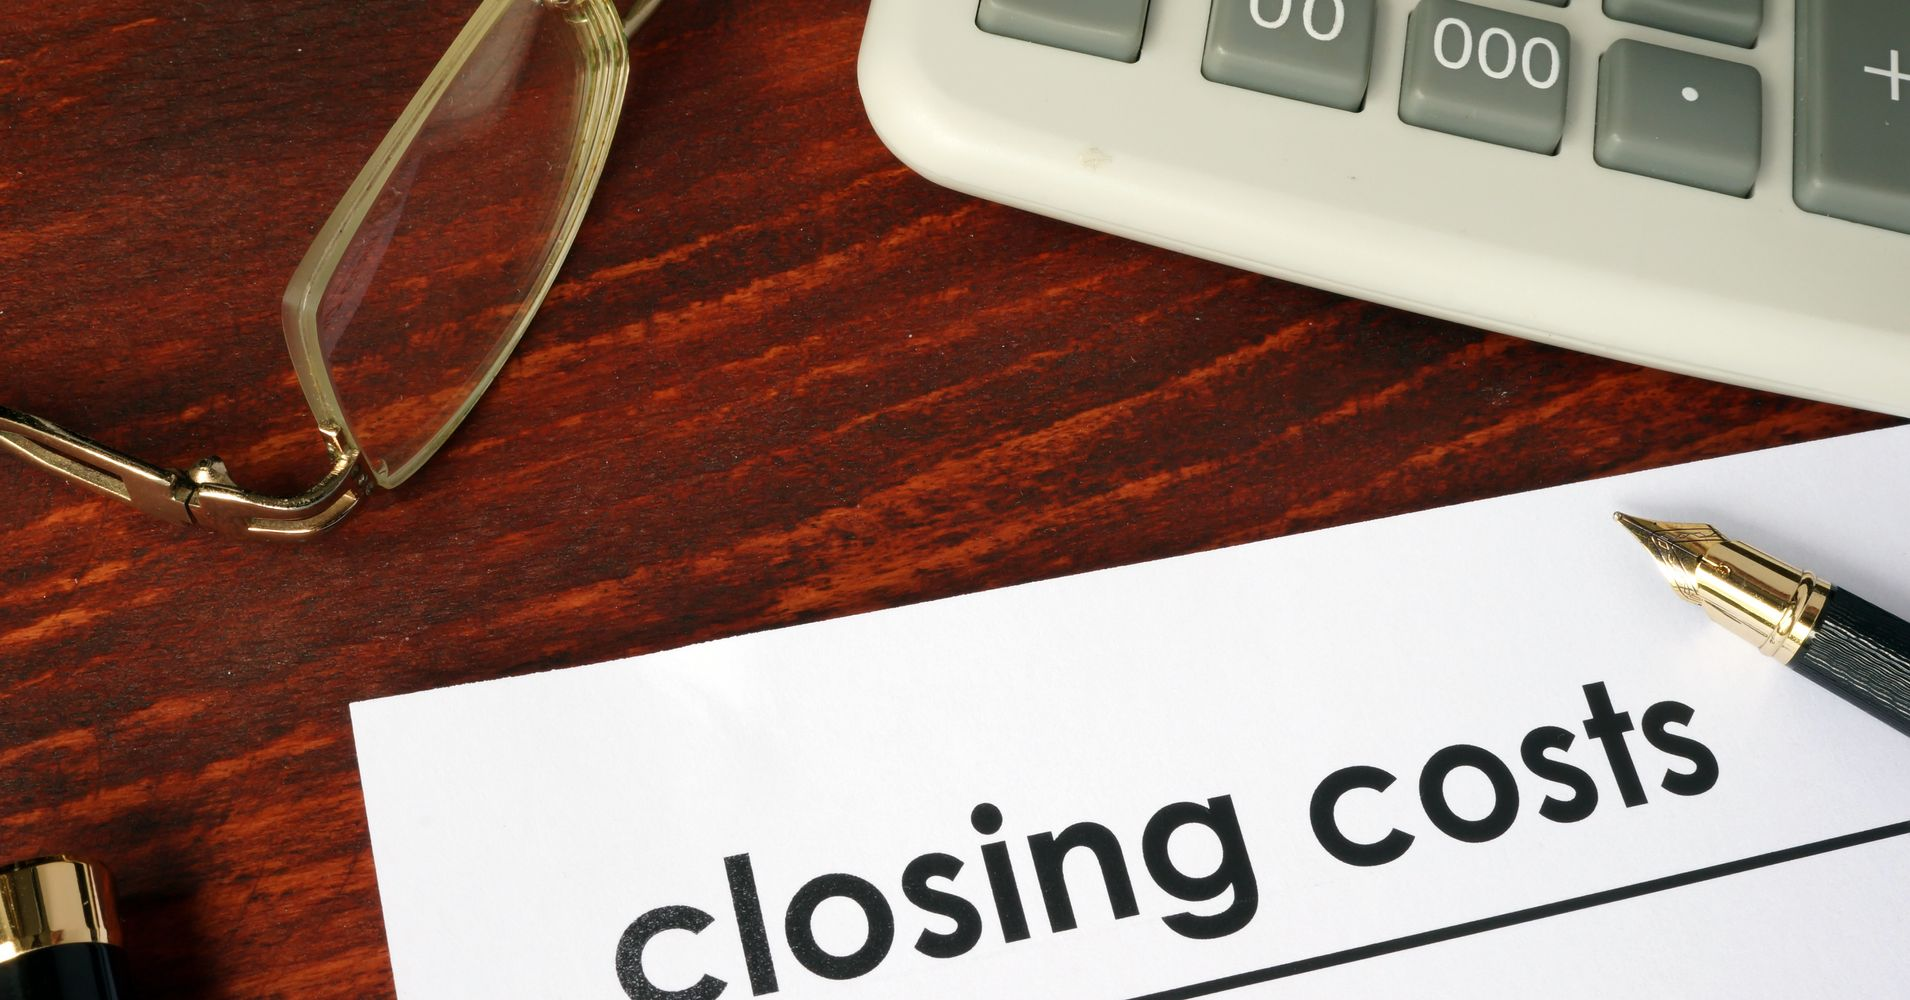 Closing Costs: What Every Home Buyer Needs To Know